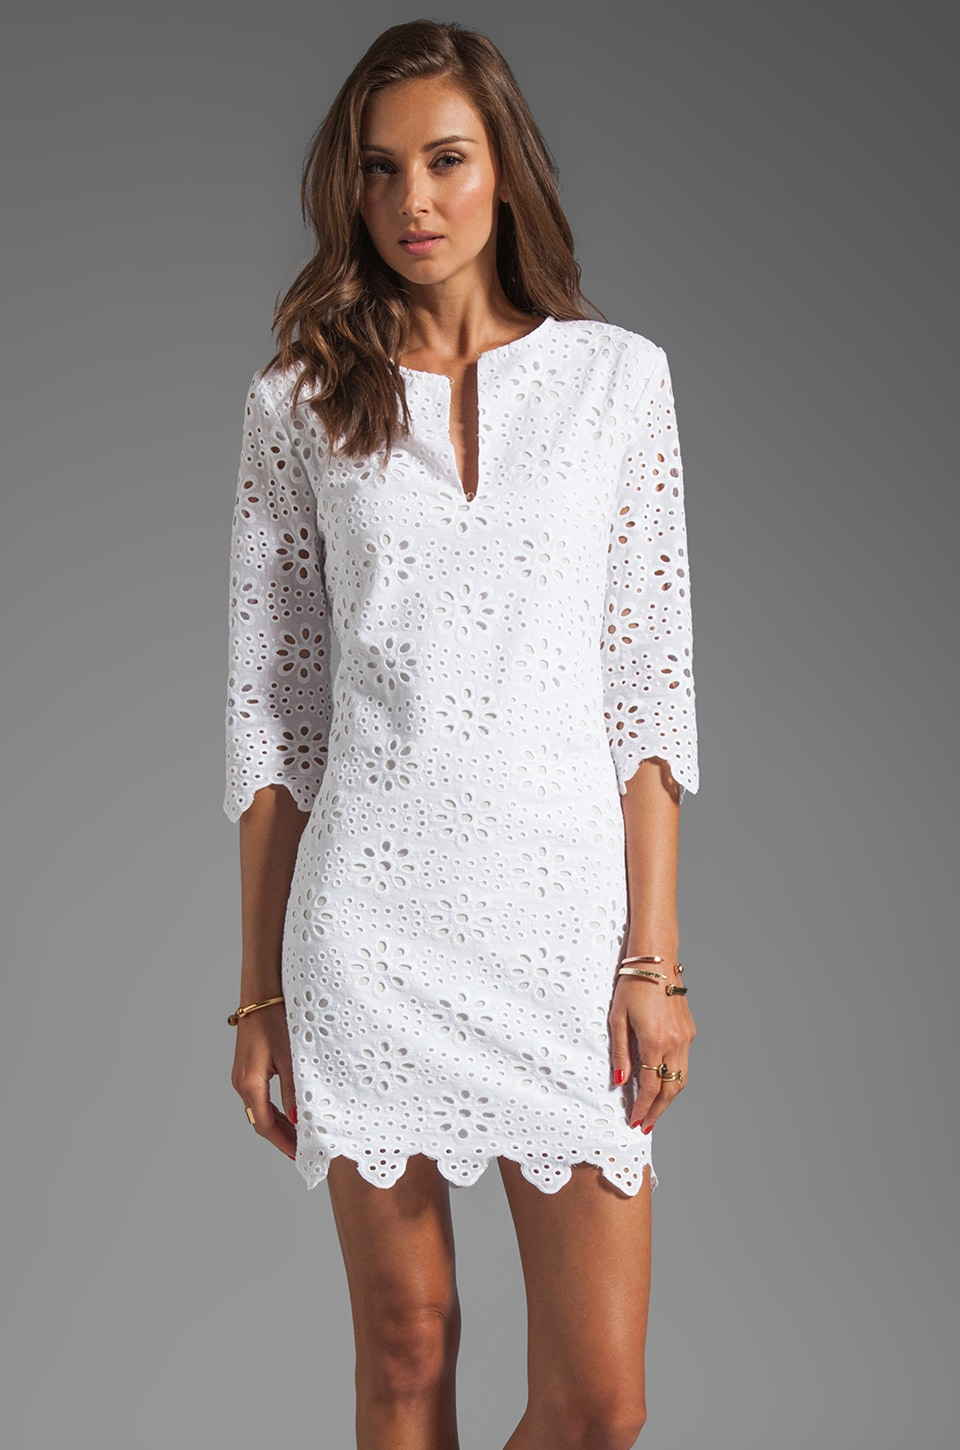 Dolce Vita Charlene Daisy Embroidery Long Sleeve Dress in Snow